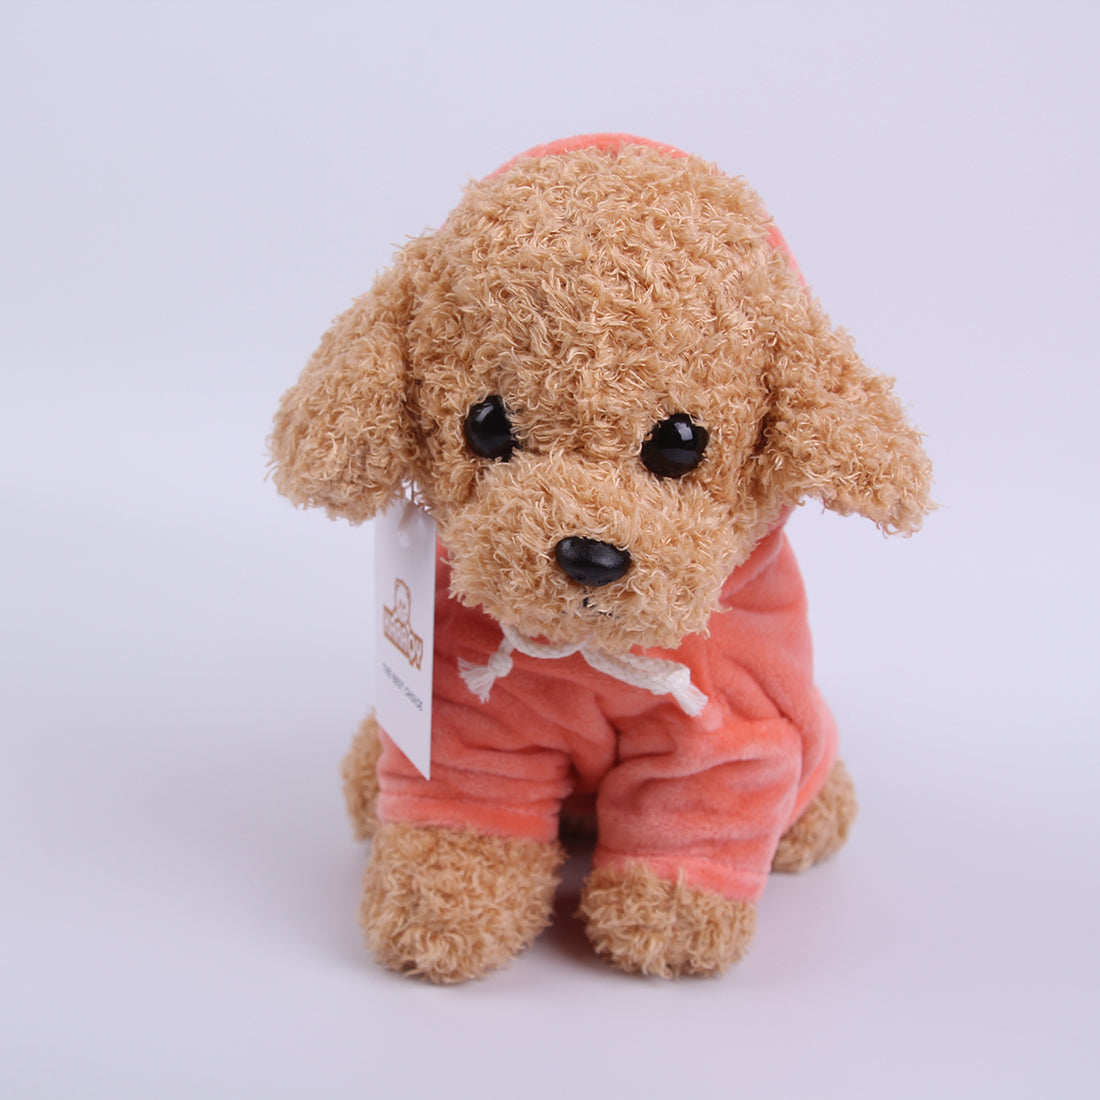 KARAQY Puppy Stuffed Animal Plush Toy